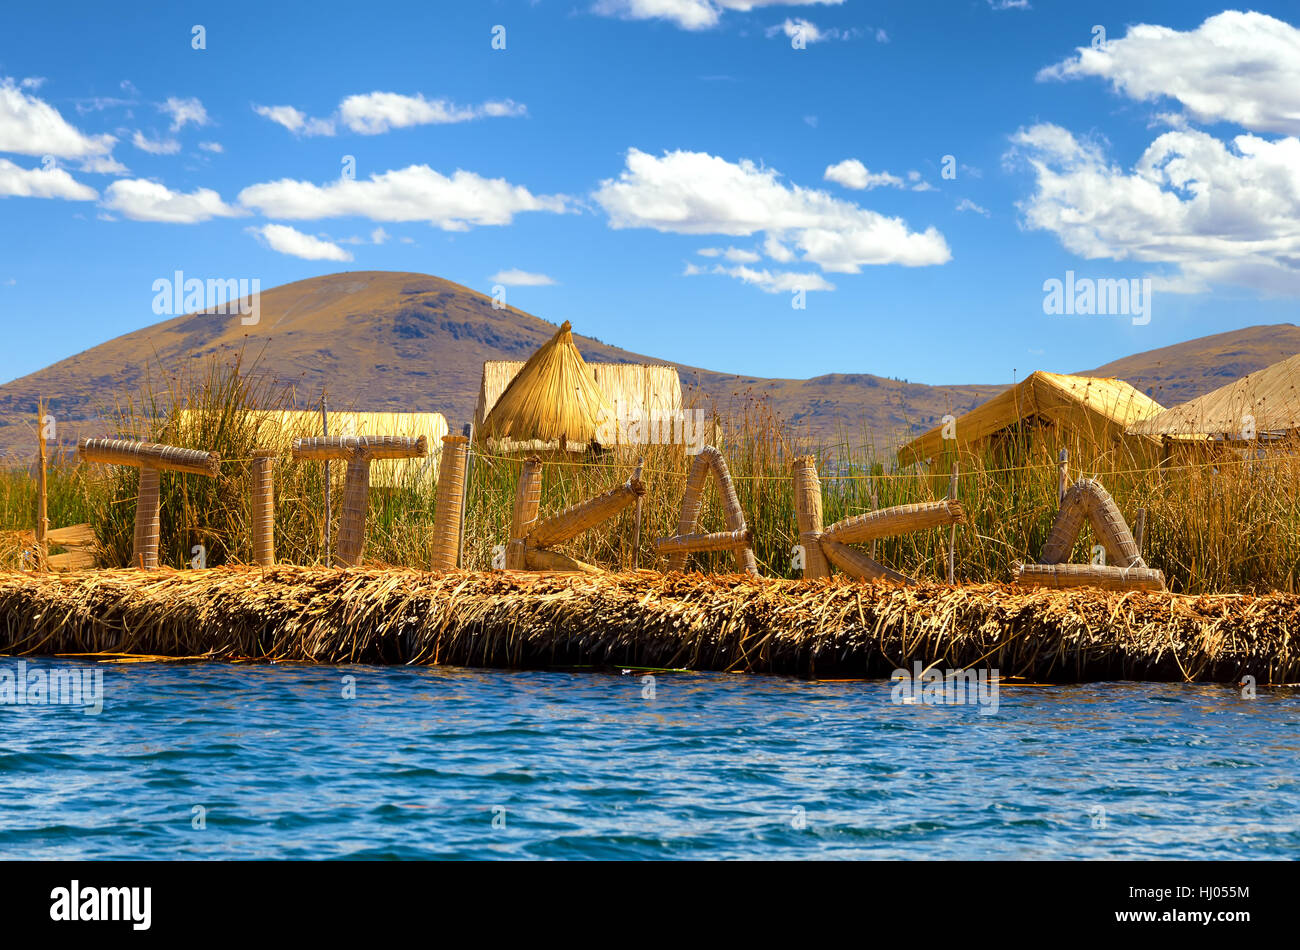 Manmade floating island with a sign spelling out Titikaka on Lake Titicaca in Peru - Stock Image